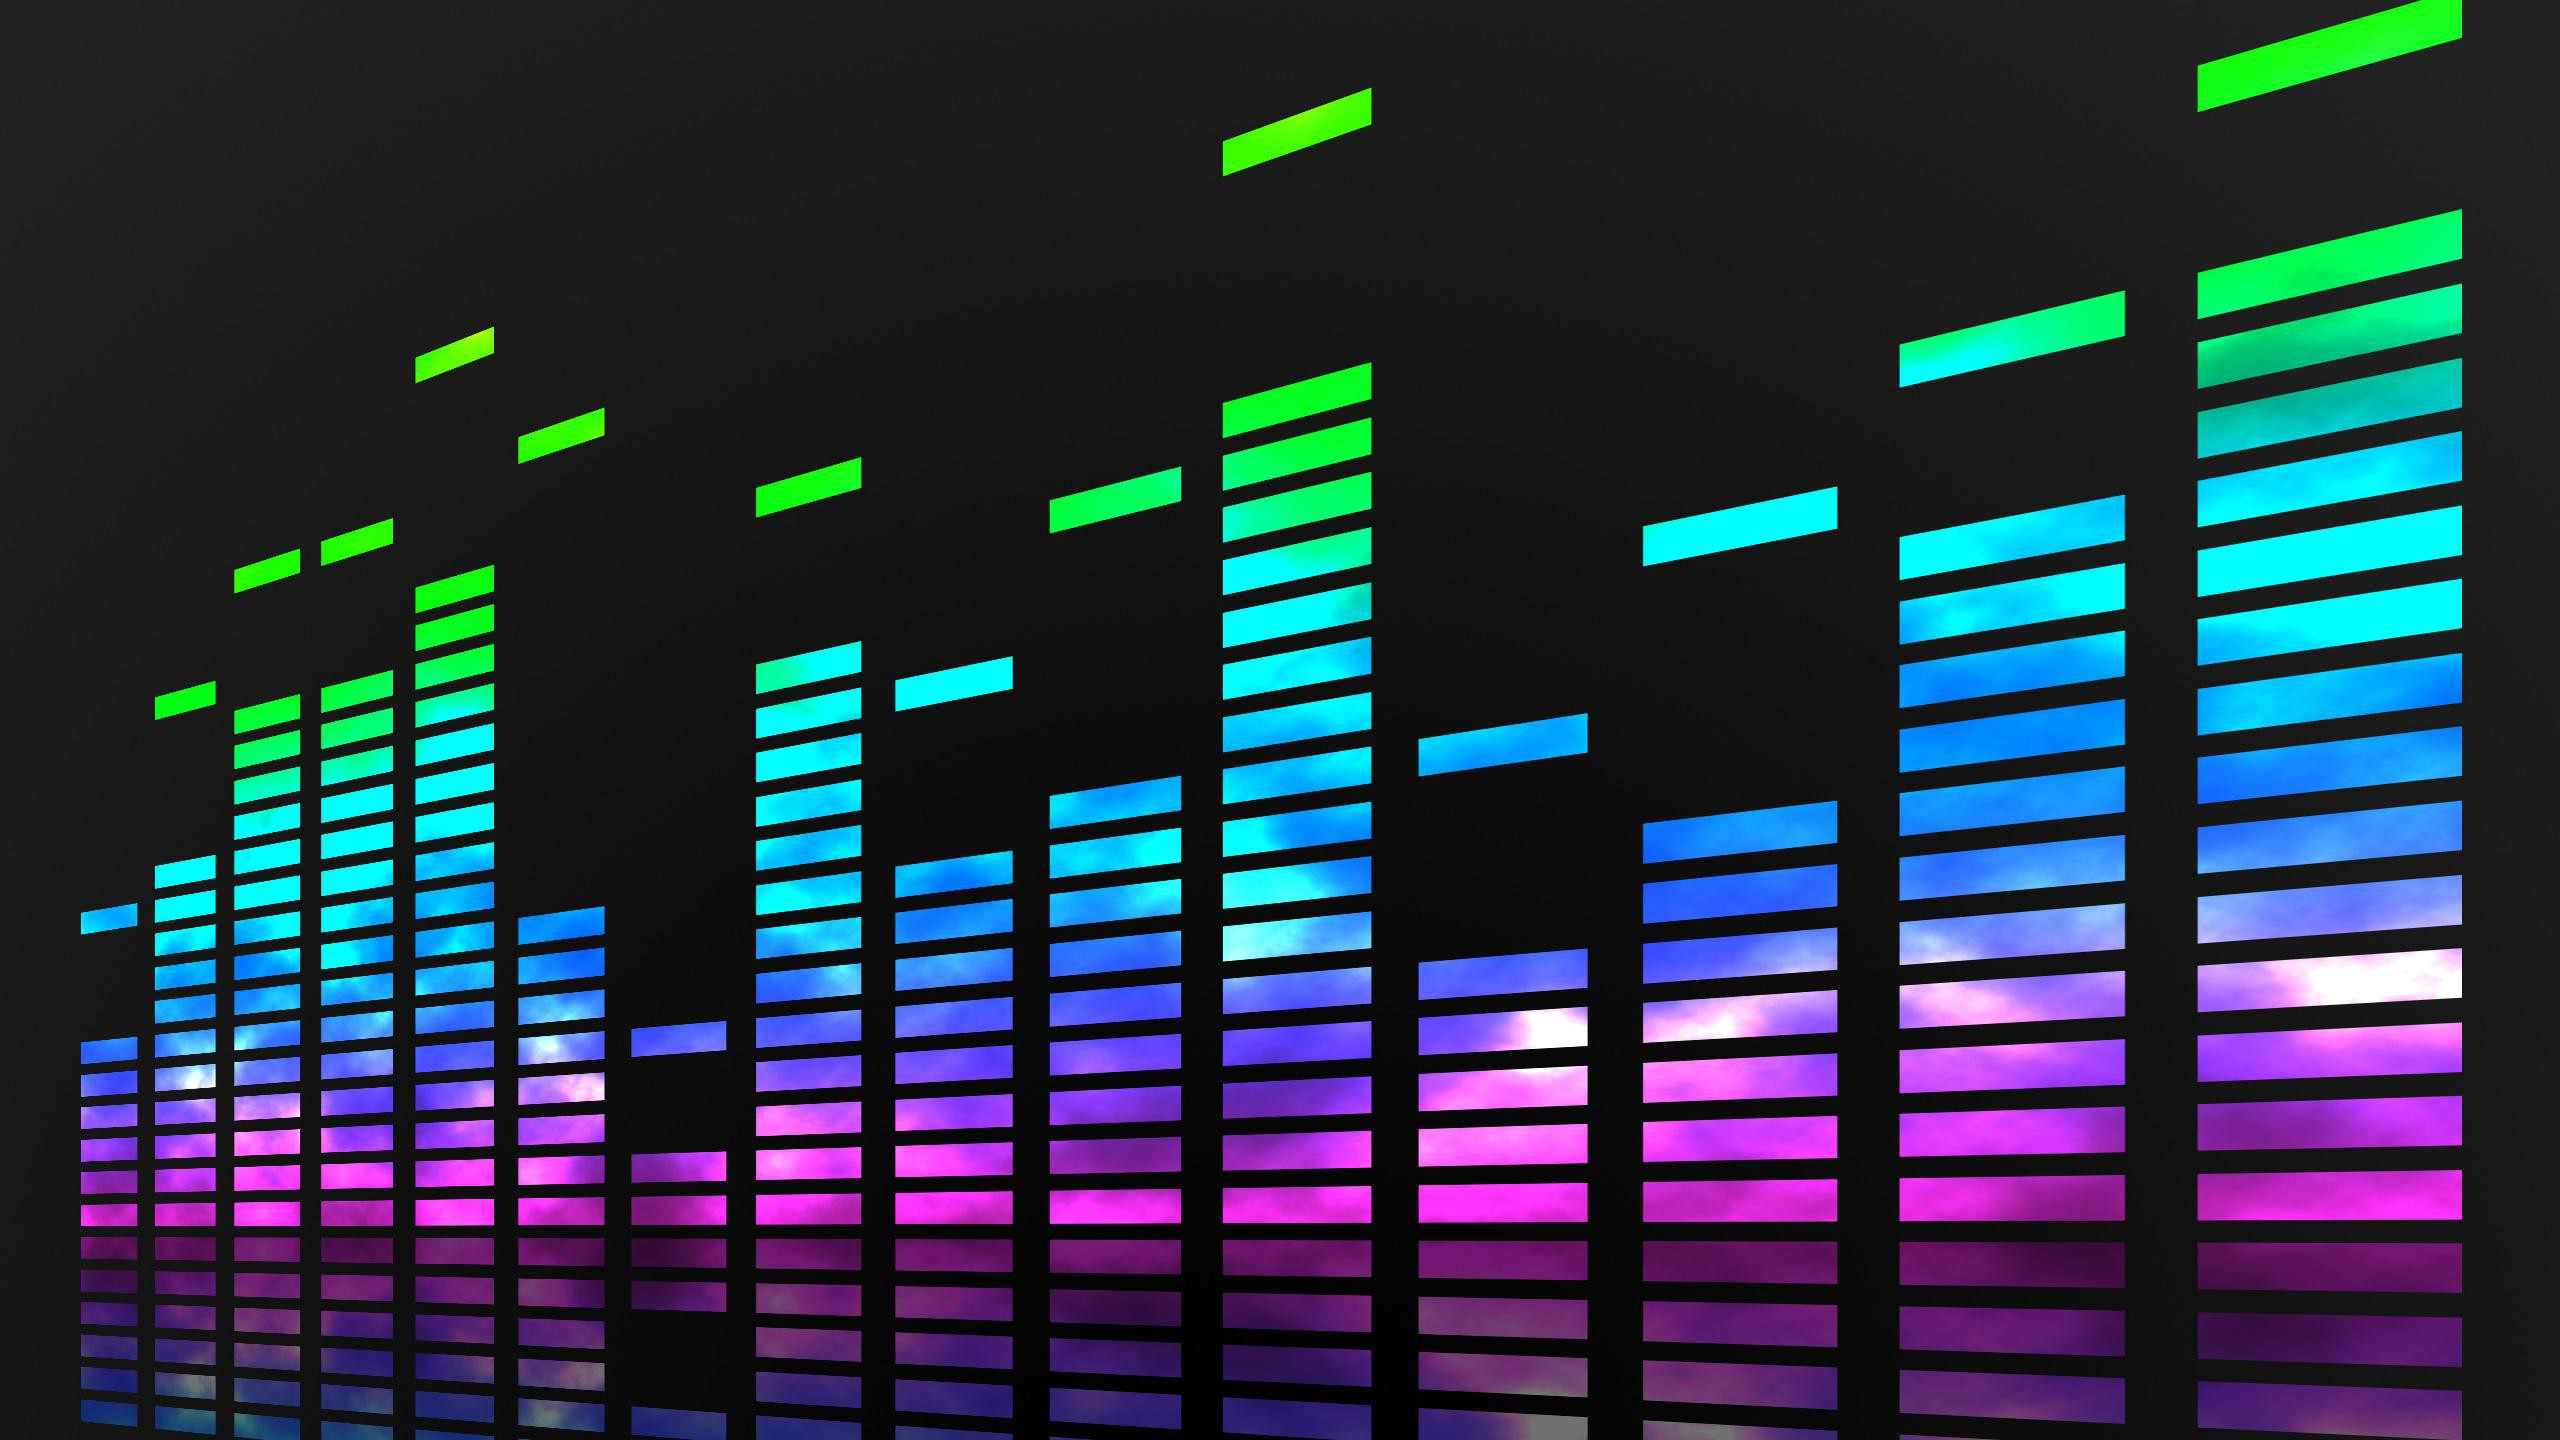 Music-Equalizer-Colorful-Wallpaper-Photo-High-Quality.jpg (